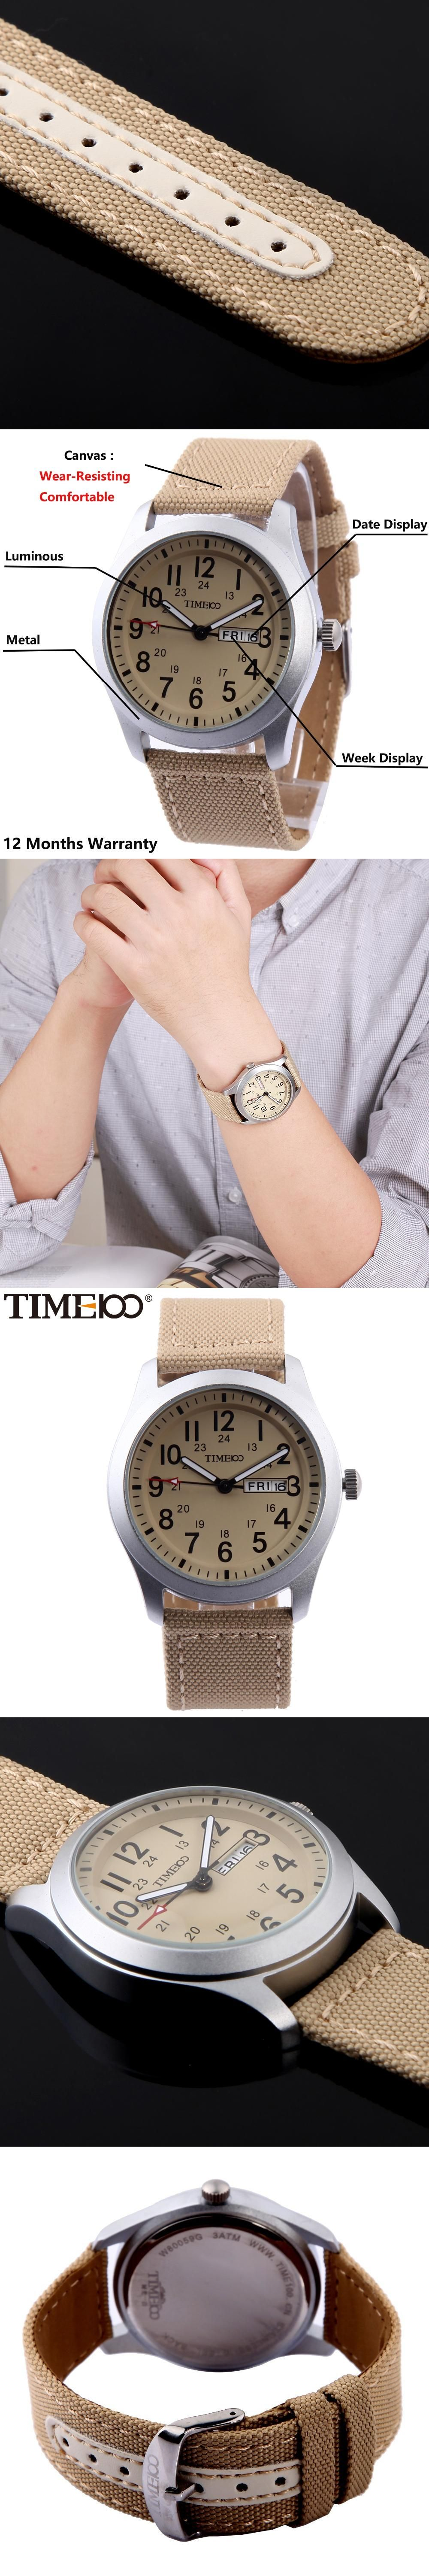 series strap canvas htm watches model khaki